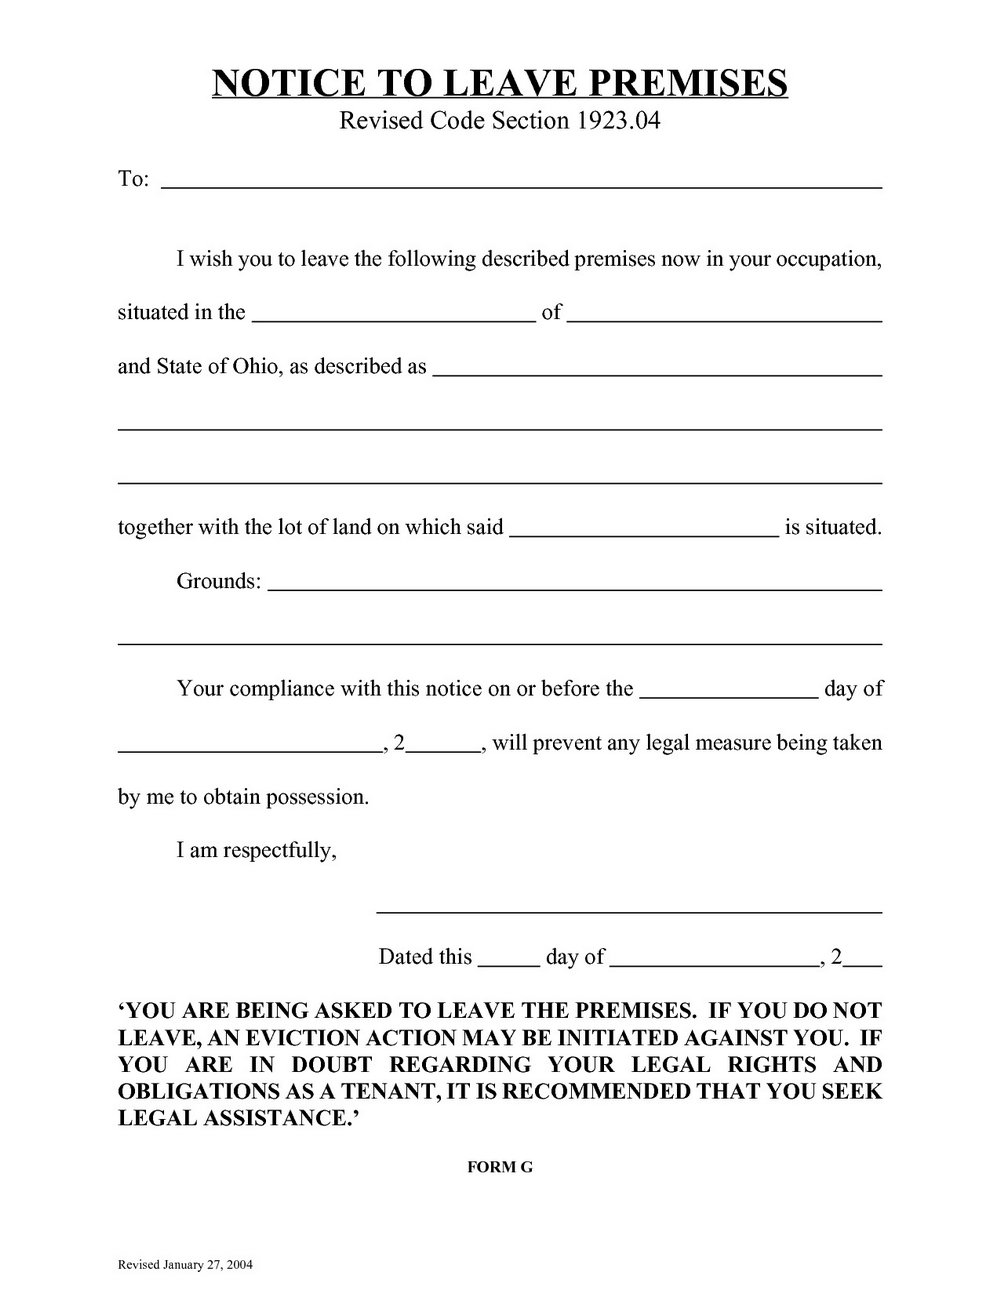 Ohio Eviction Notice Form